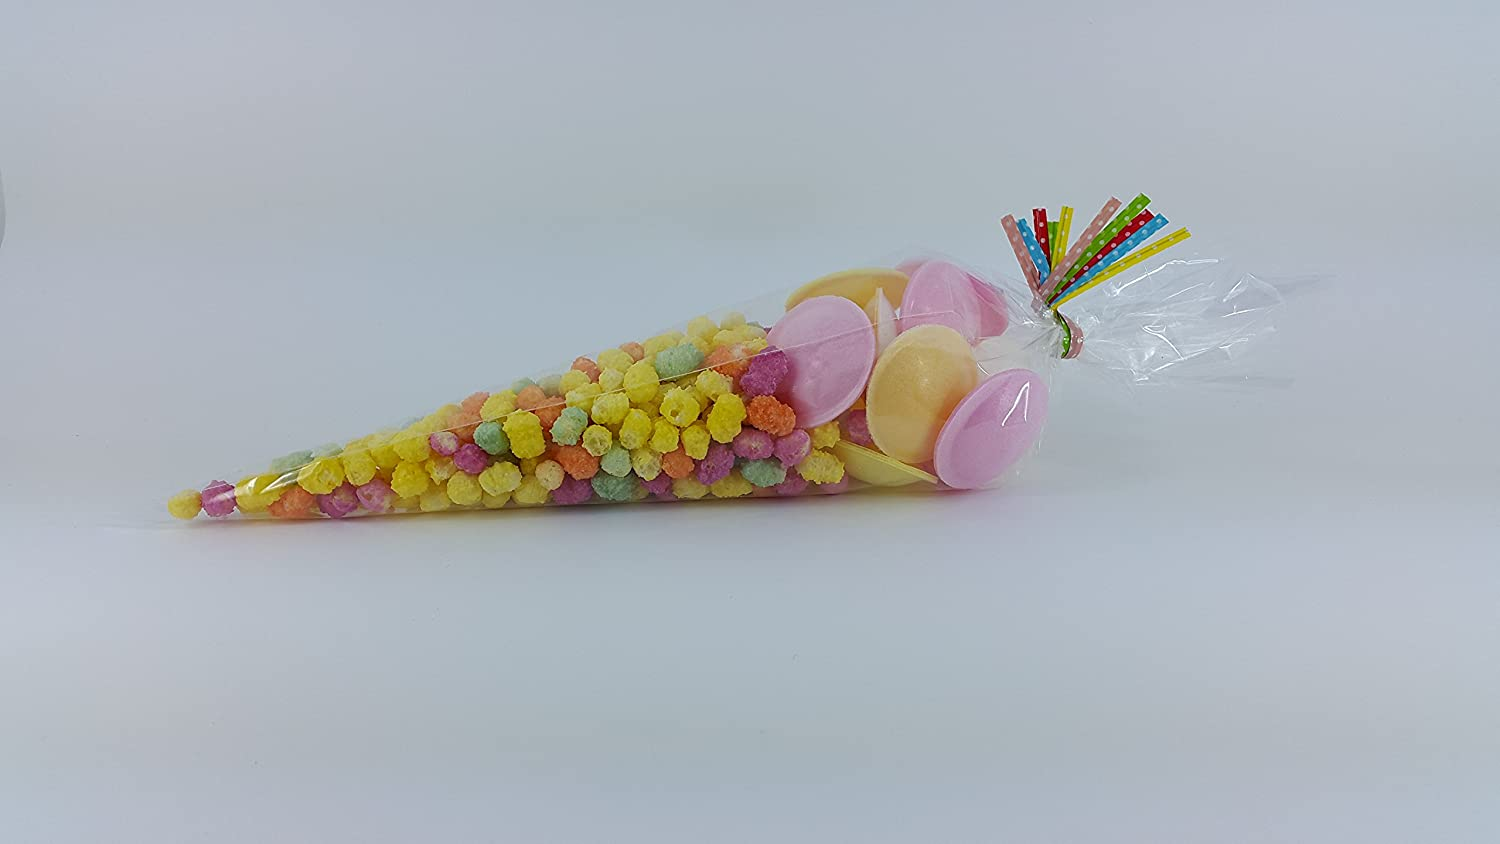 25 CLEAR CELLOPHANE CONE BAGS WITH ASSORTED COLOURED POLKA DOT TWIST TIES LARGE 14.5' x 7' Premier Design Products